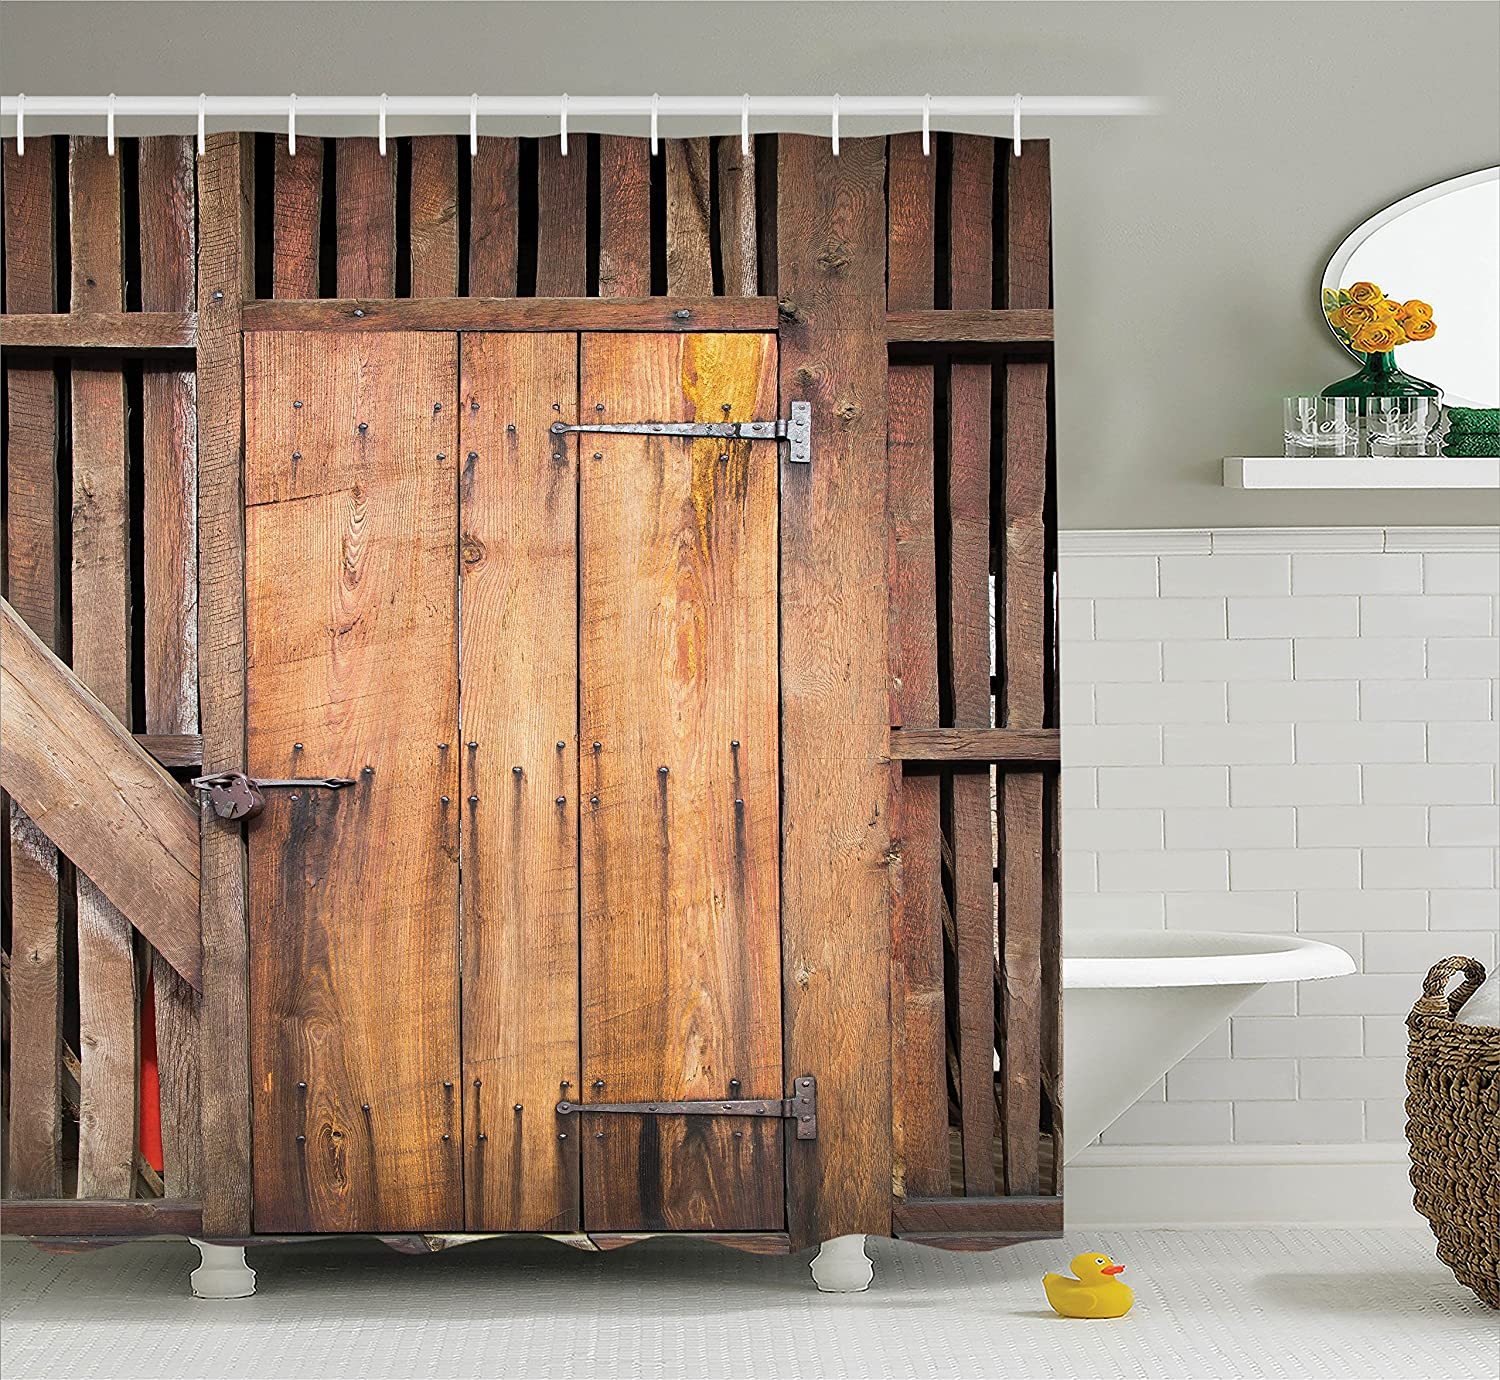 Ambesonne Wooden Barn Door Shower Curtain, Rustic Decor Rural Vertical Barns House Nobody Bohemian Decor Print, Polyester Fabric Bathroom Set with Hooks, Brown